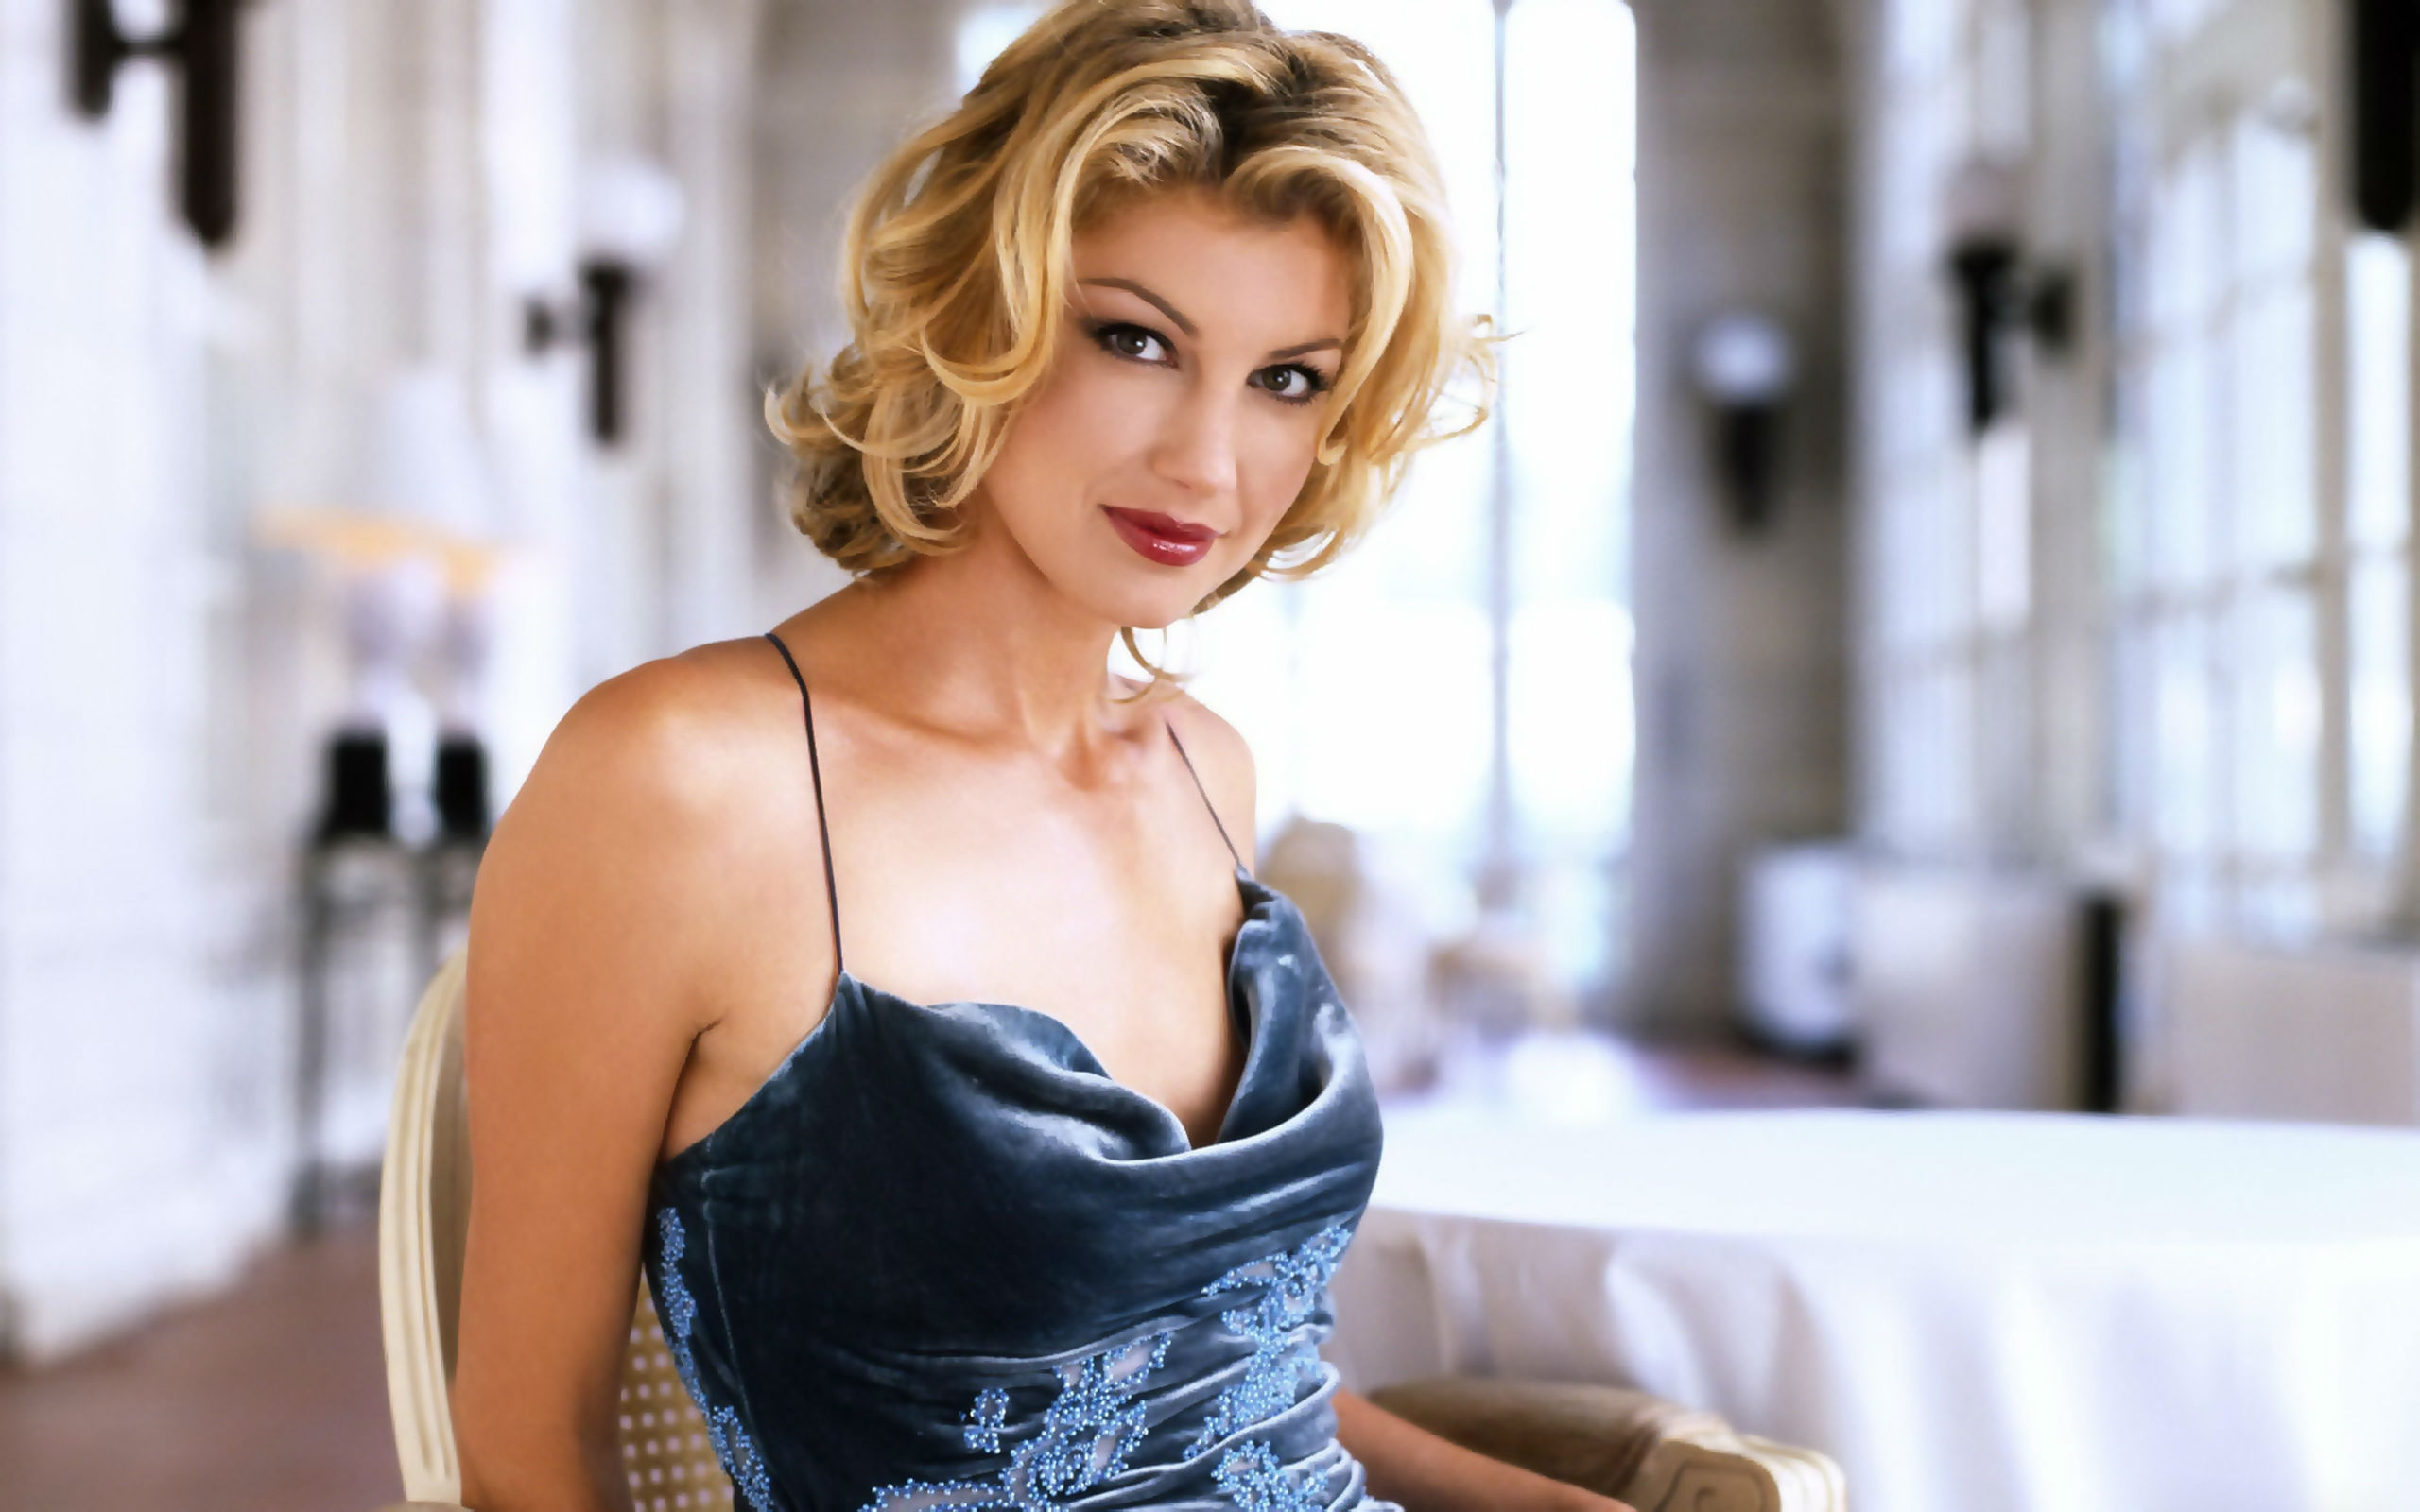 sexy faith hill wallpaper background 59966